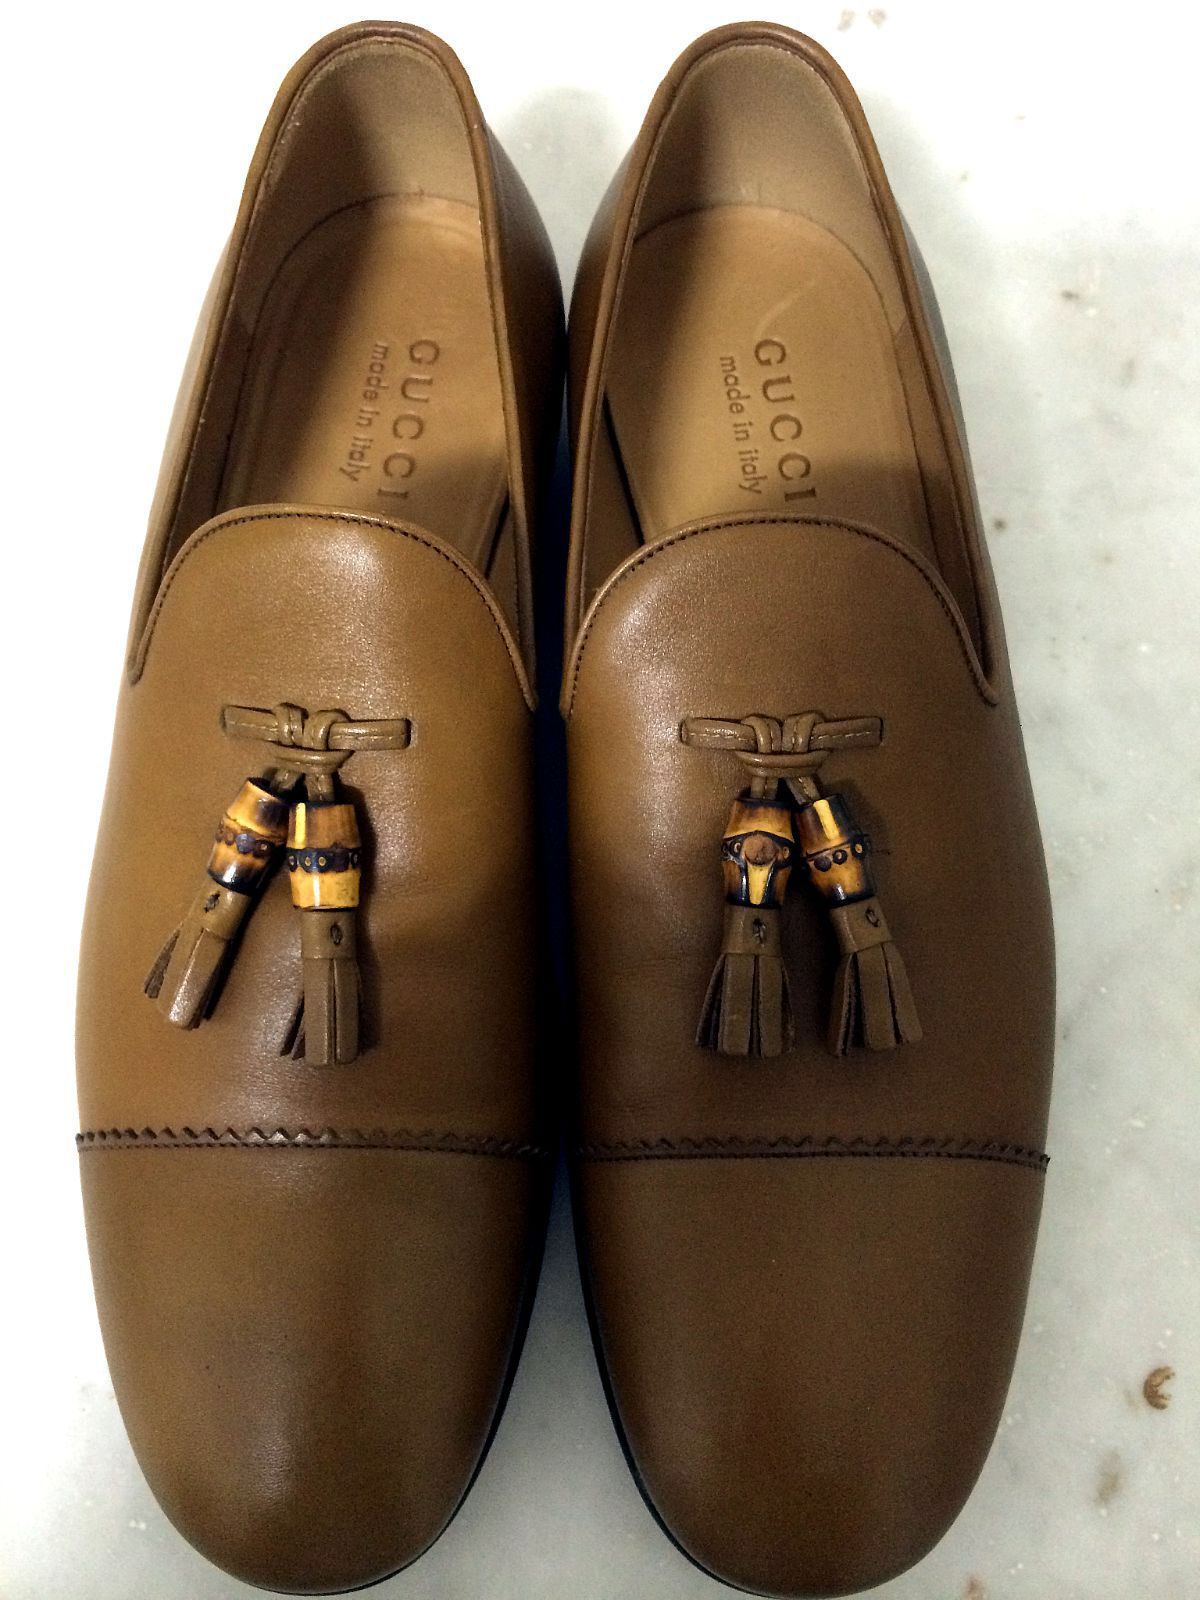 Online Store for Mens and Womens Penny Loafers, Tassle's, and Slip-in  shoes. Enjoy an extensive selection of Loafer for the Dapper shoe lover  fanatic!